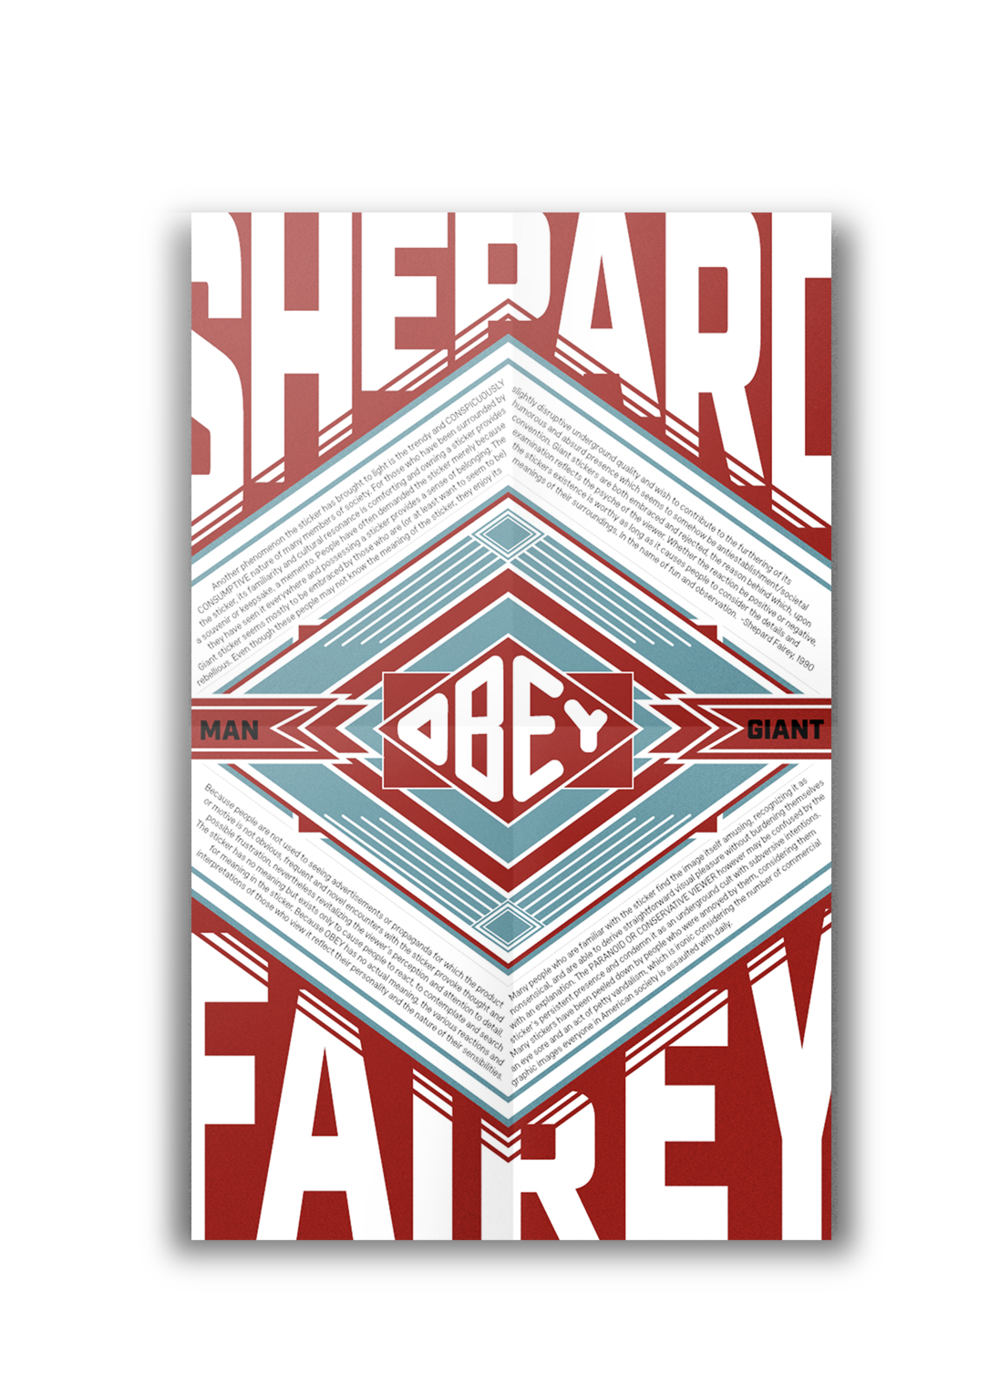 Shepard Fairey Manifesto - This is a poster I created in a style similar to Fairey's in order to celebrate is manifesto.